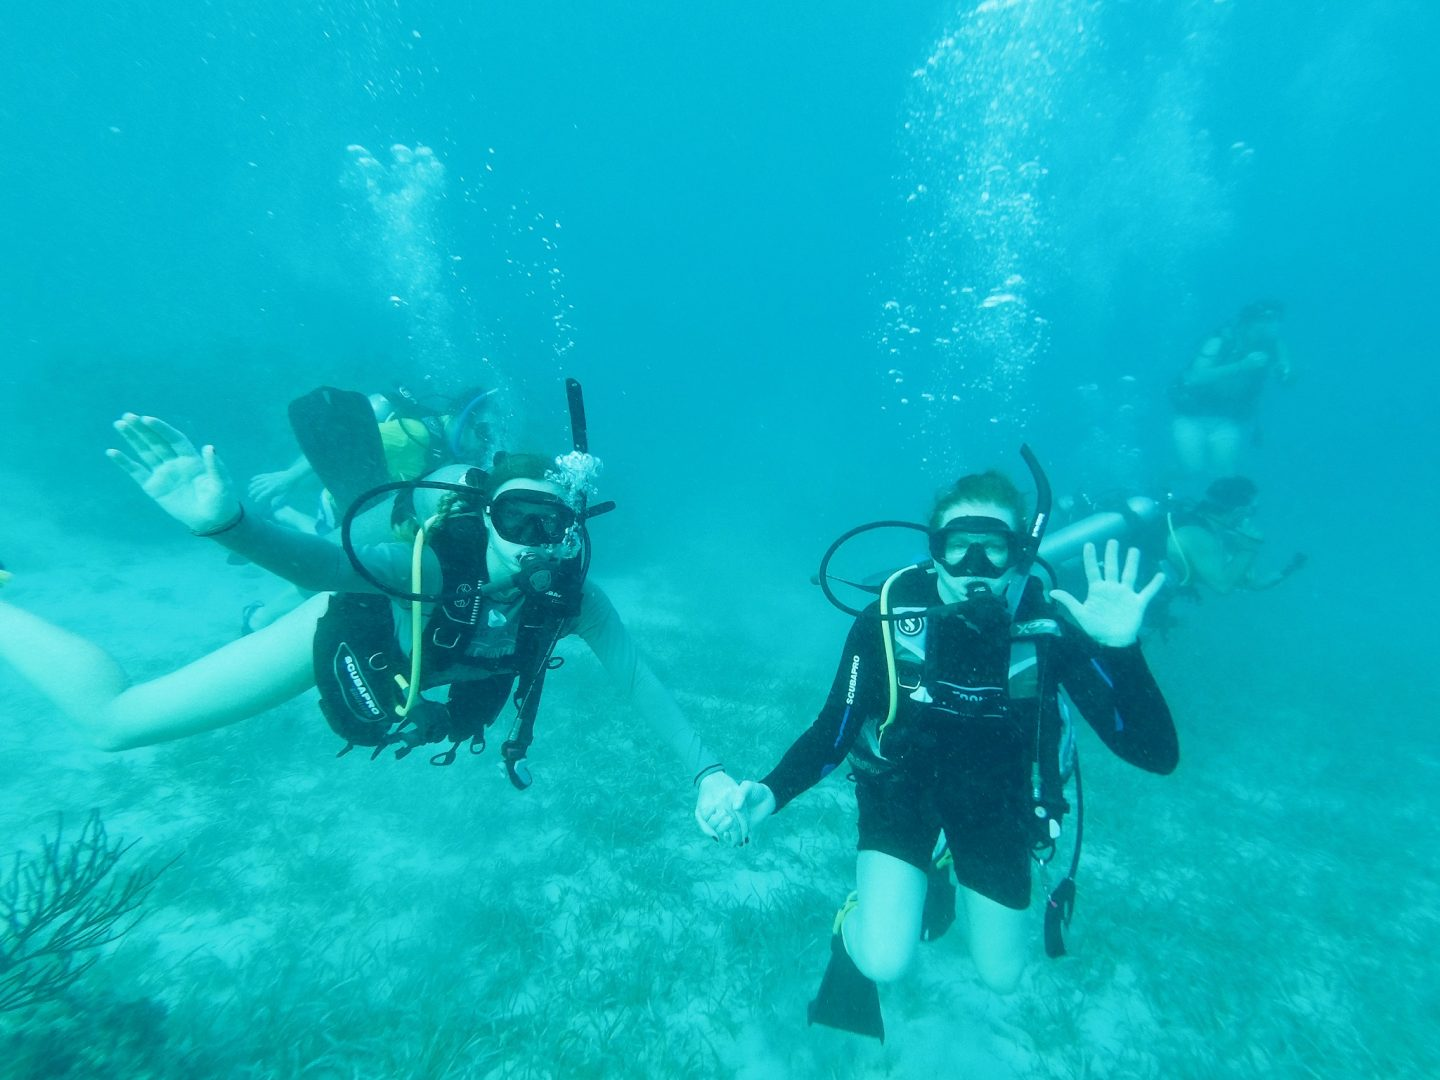 Scuba diving with my mom in the Cayman Islands!